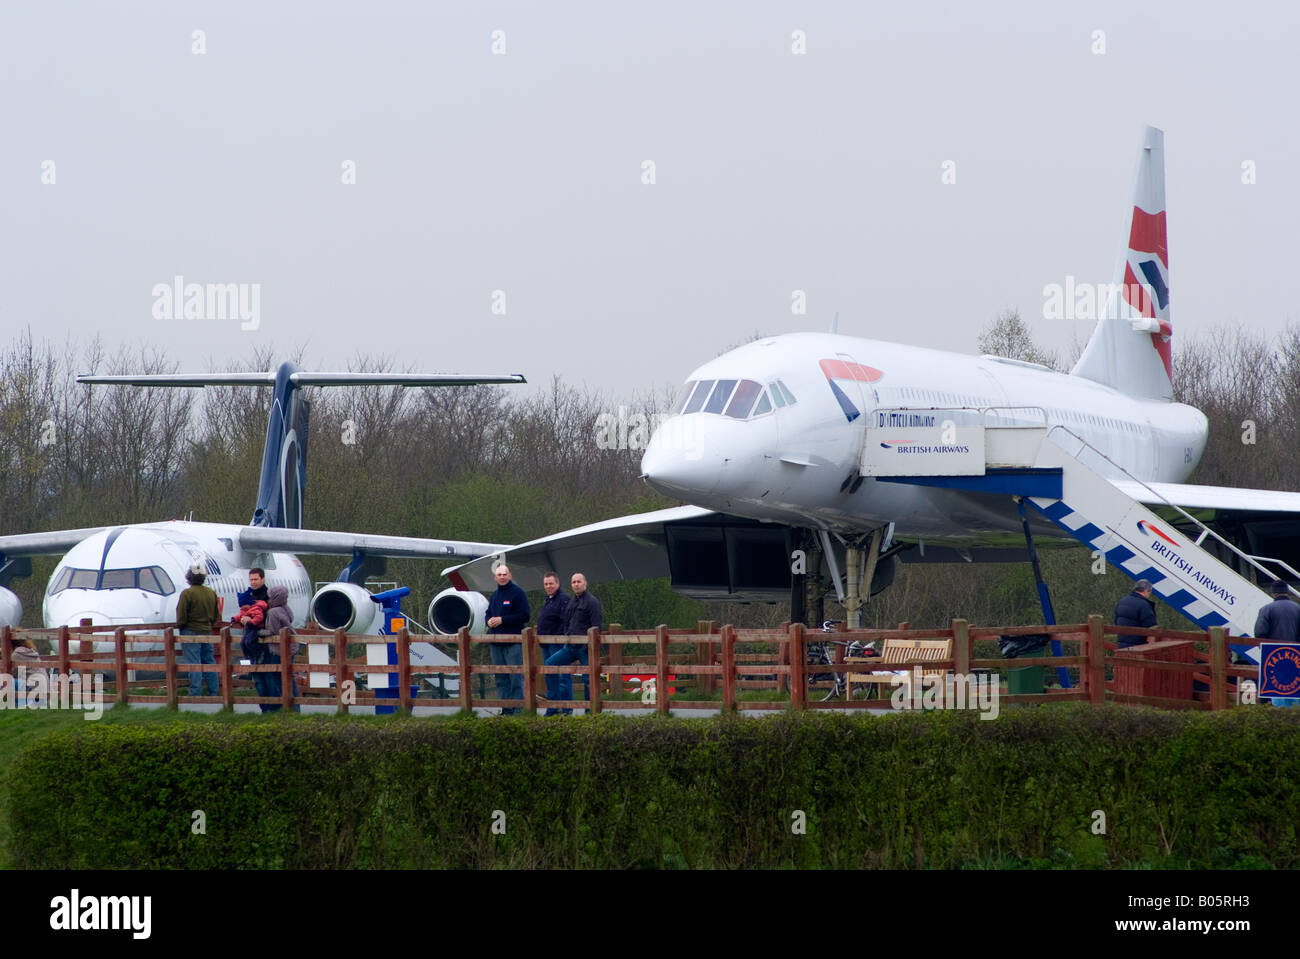 British Airways Concorde G-BOAC and Avro RJ100 on Static Display at Manchester Ringway Airport England United Kingdom - Stock Image